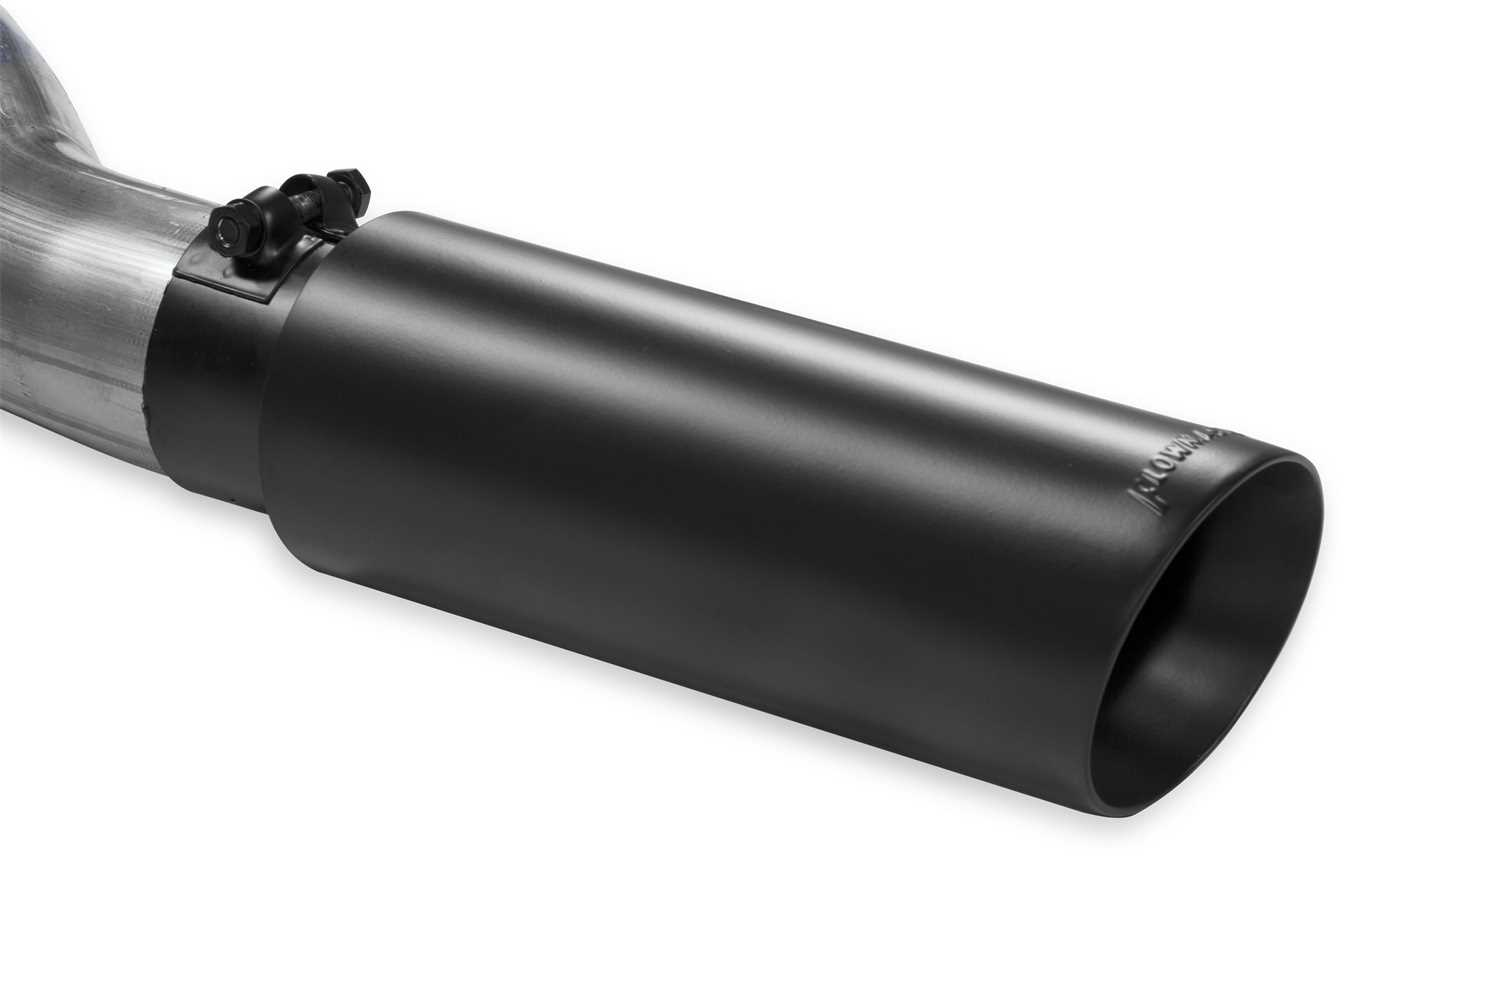 817936 Flowmaster Outlaw Series™ Cat Back Exhaust System